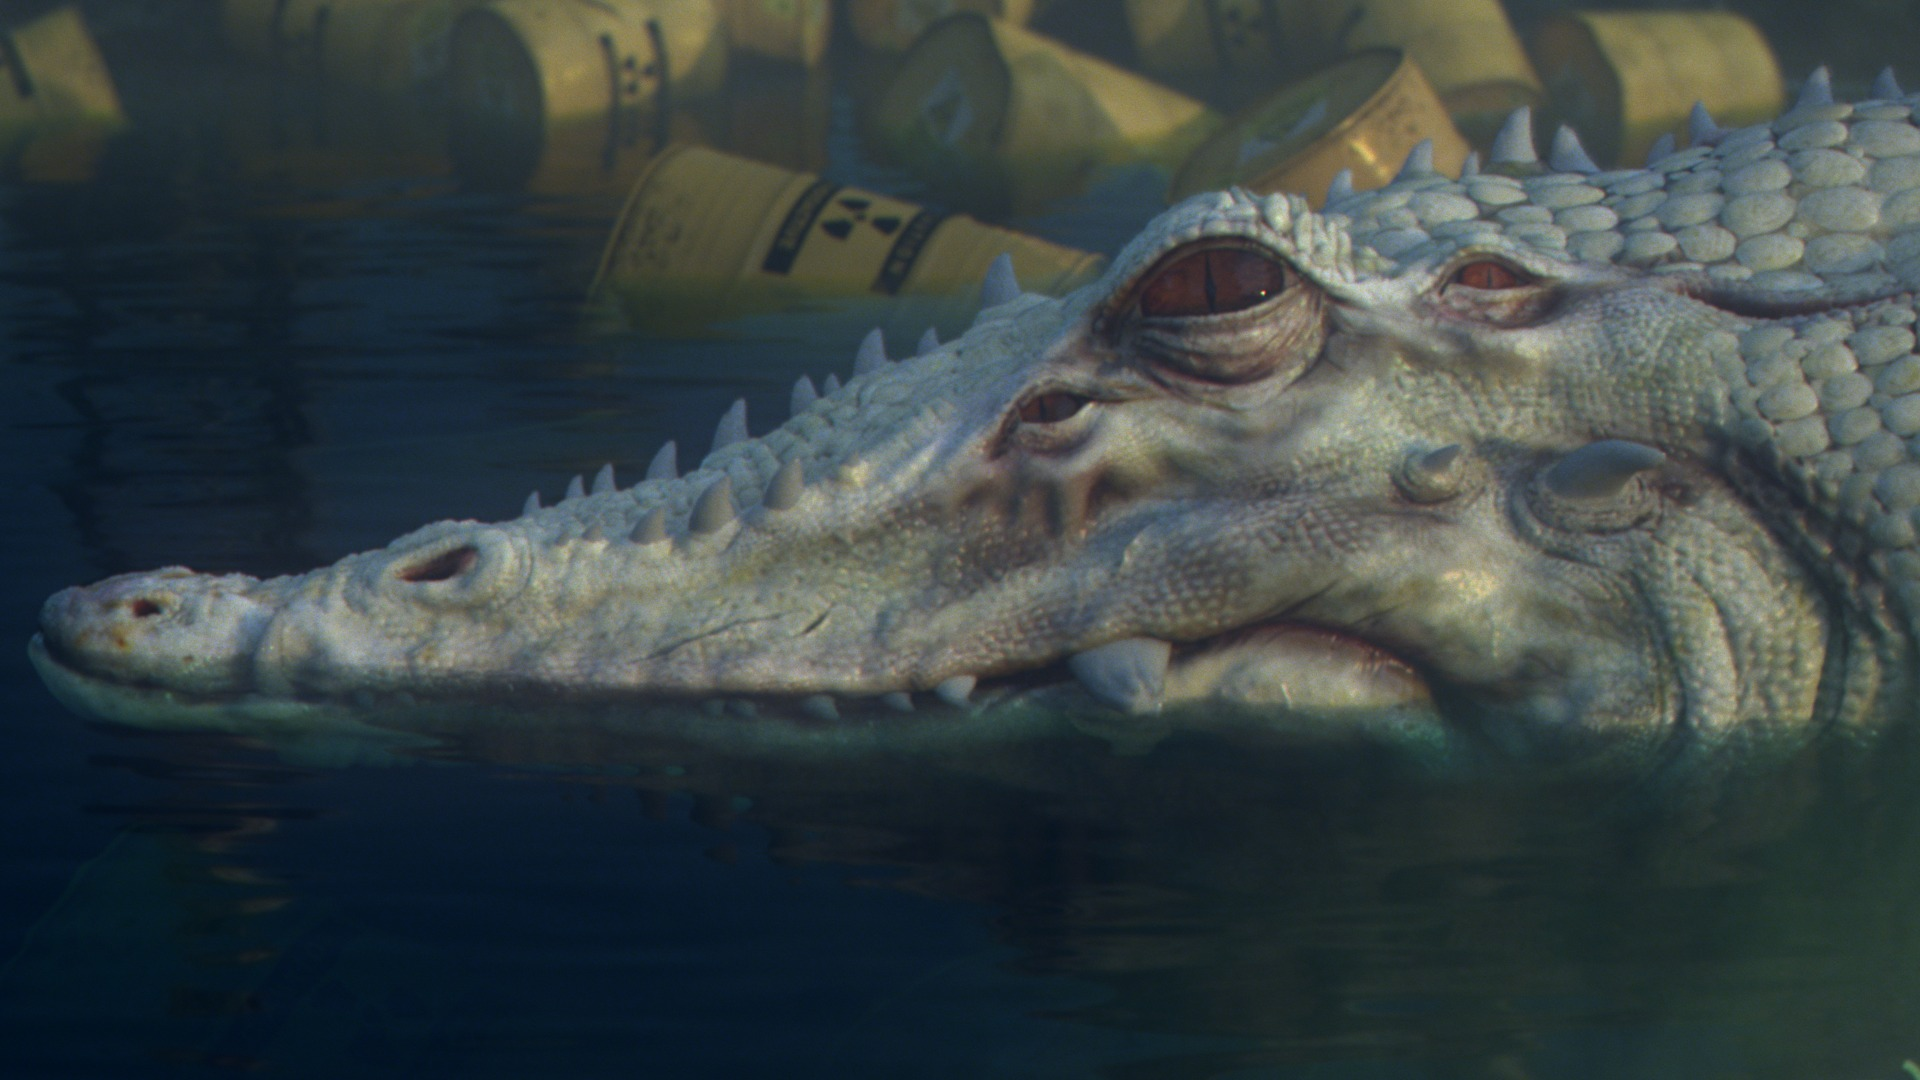 albino_crocodile_comp_v029_003